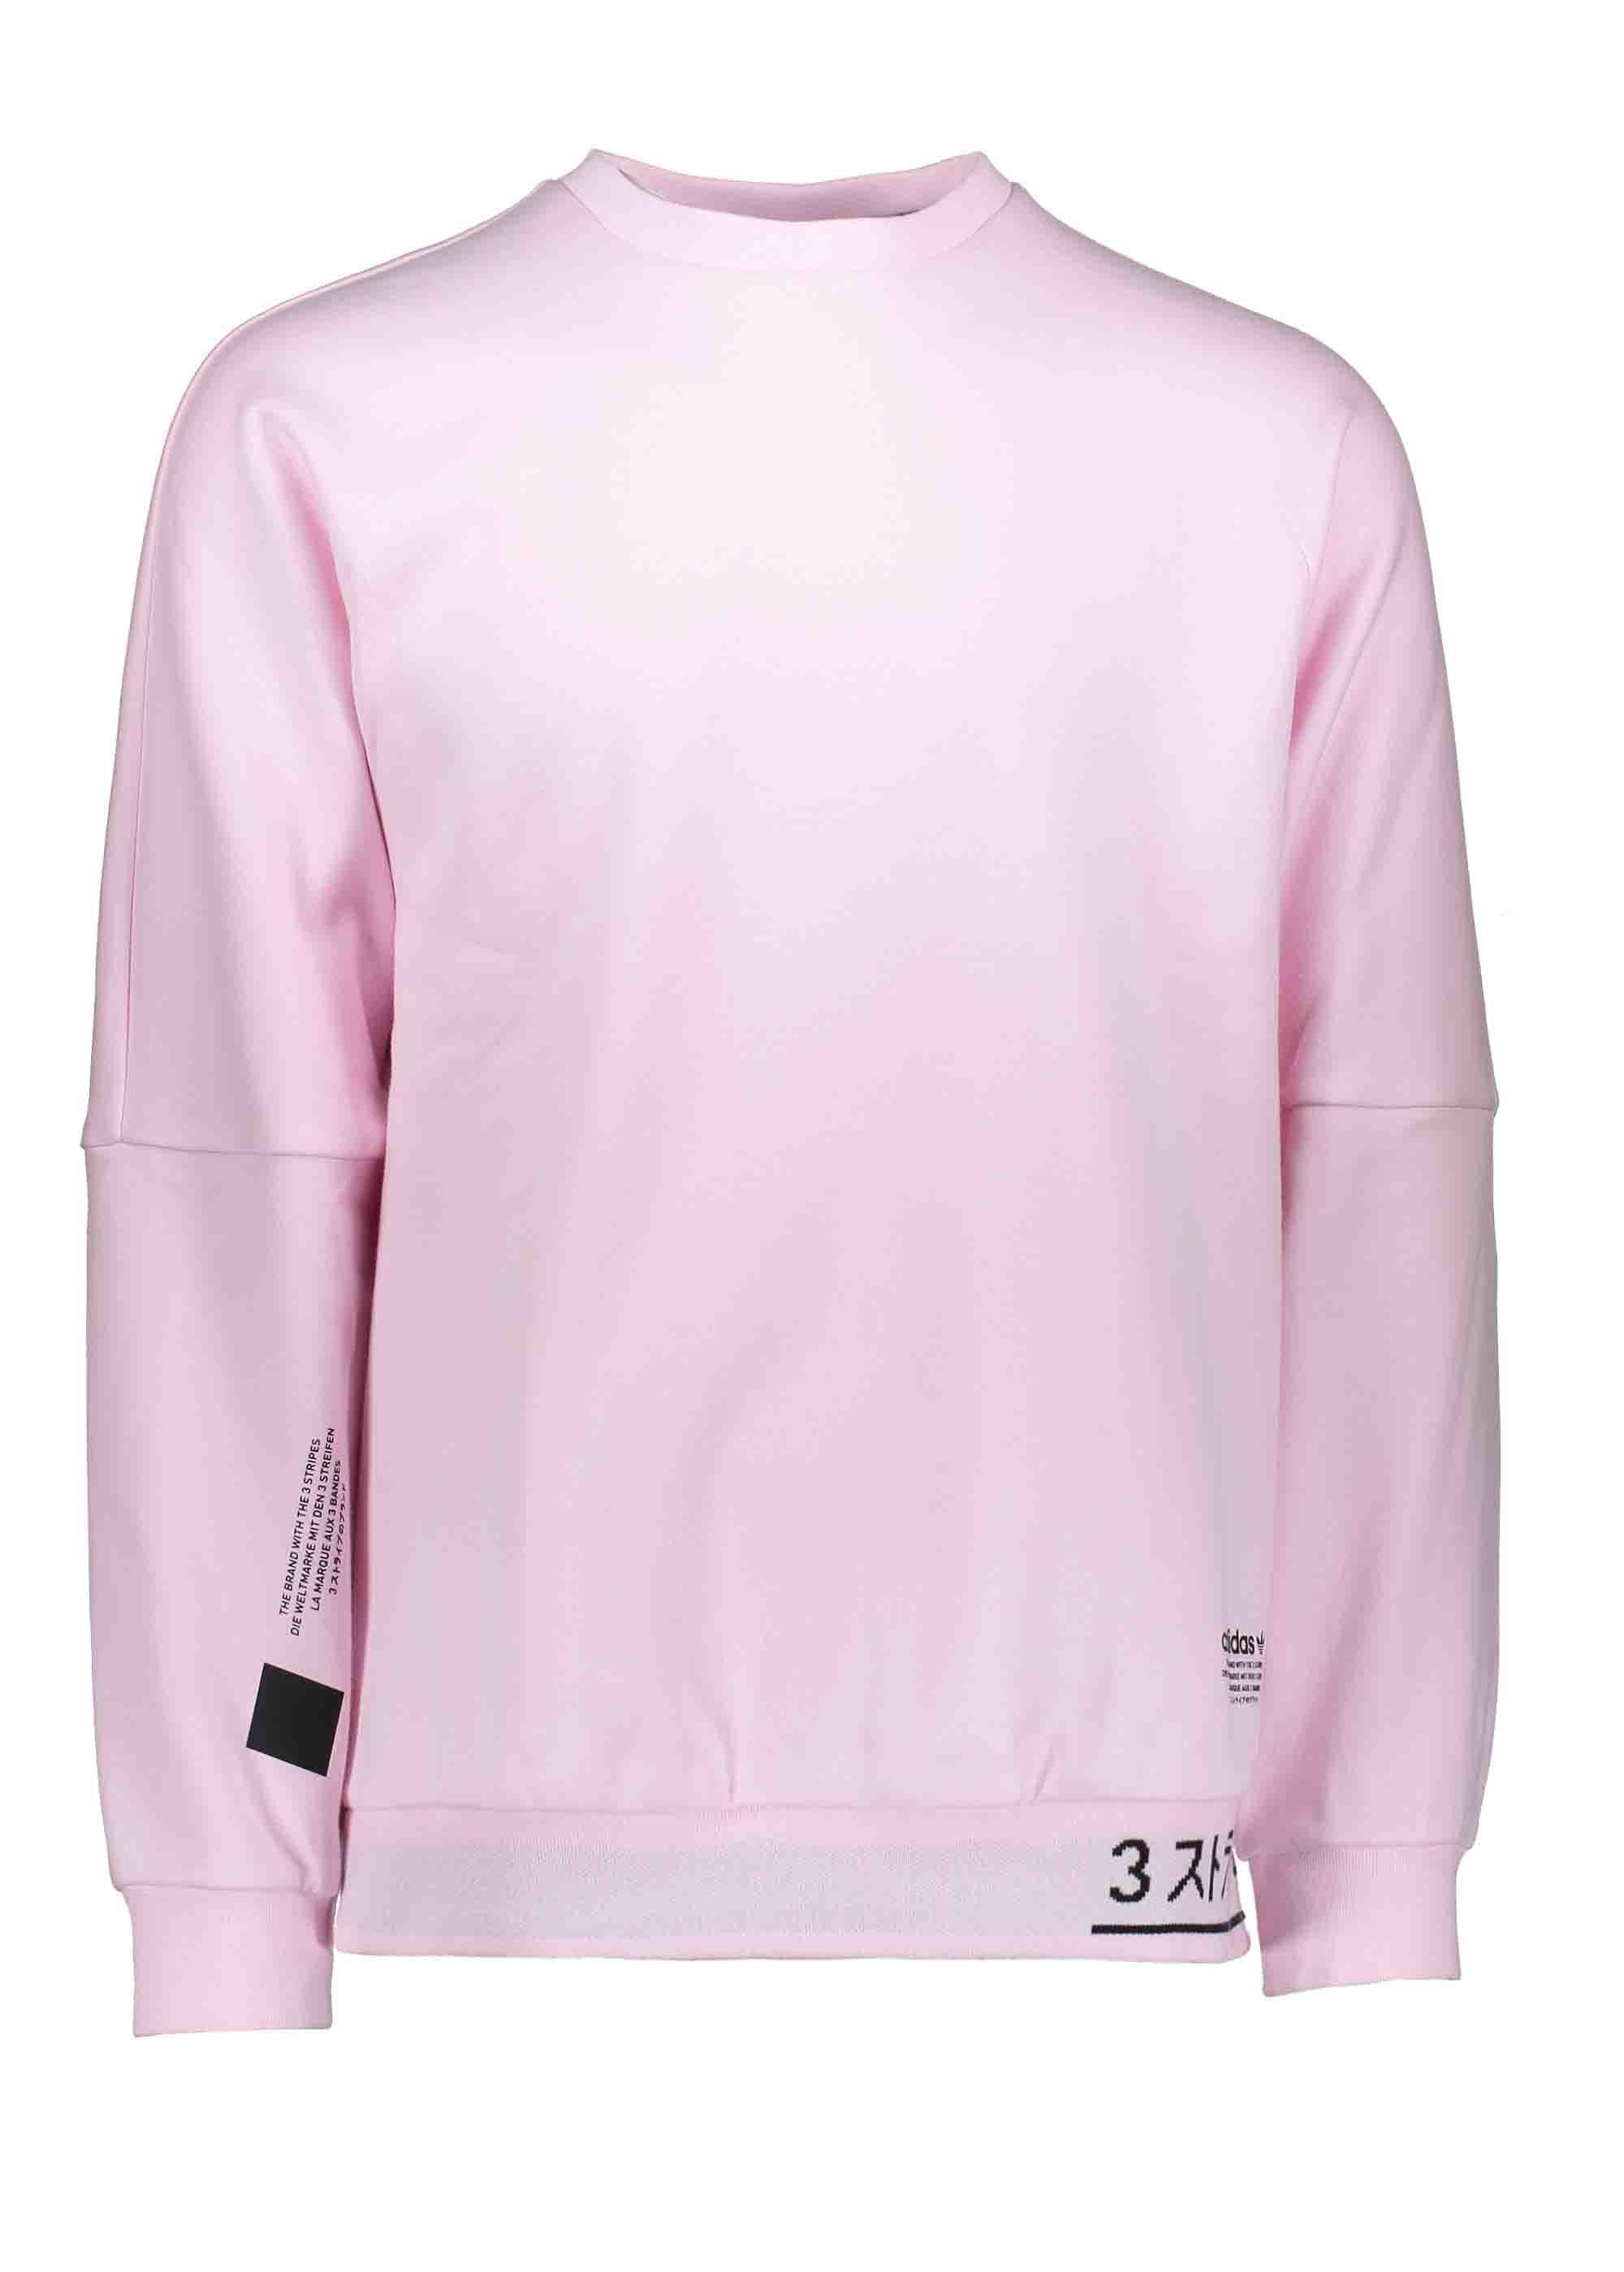 nouveau style 1ba31 a60be adidas Originals Apparel NMD Sweater - Clear Pink